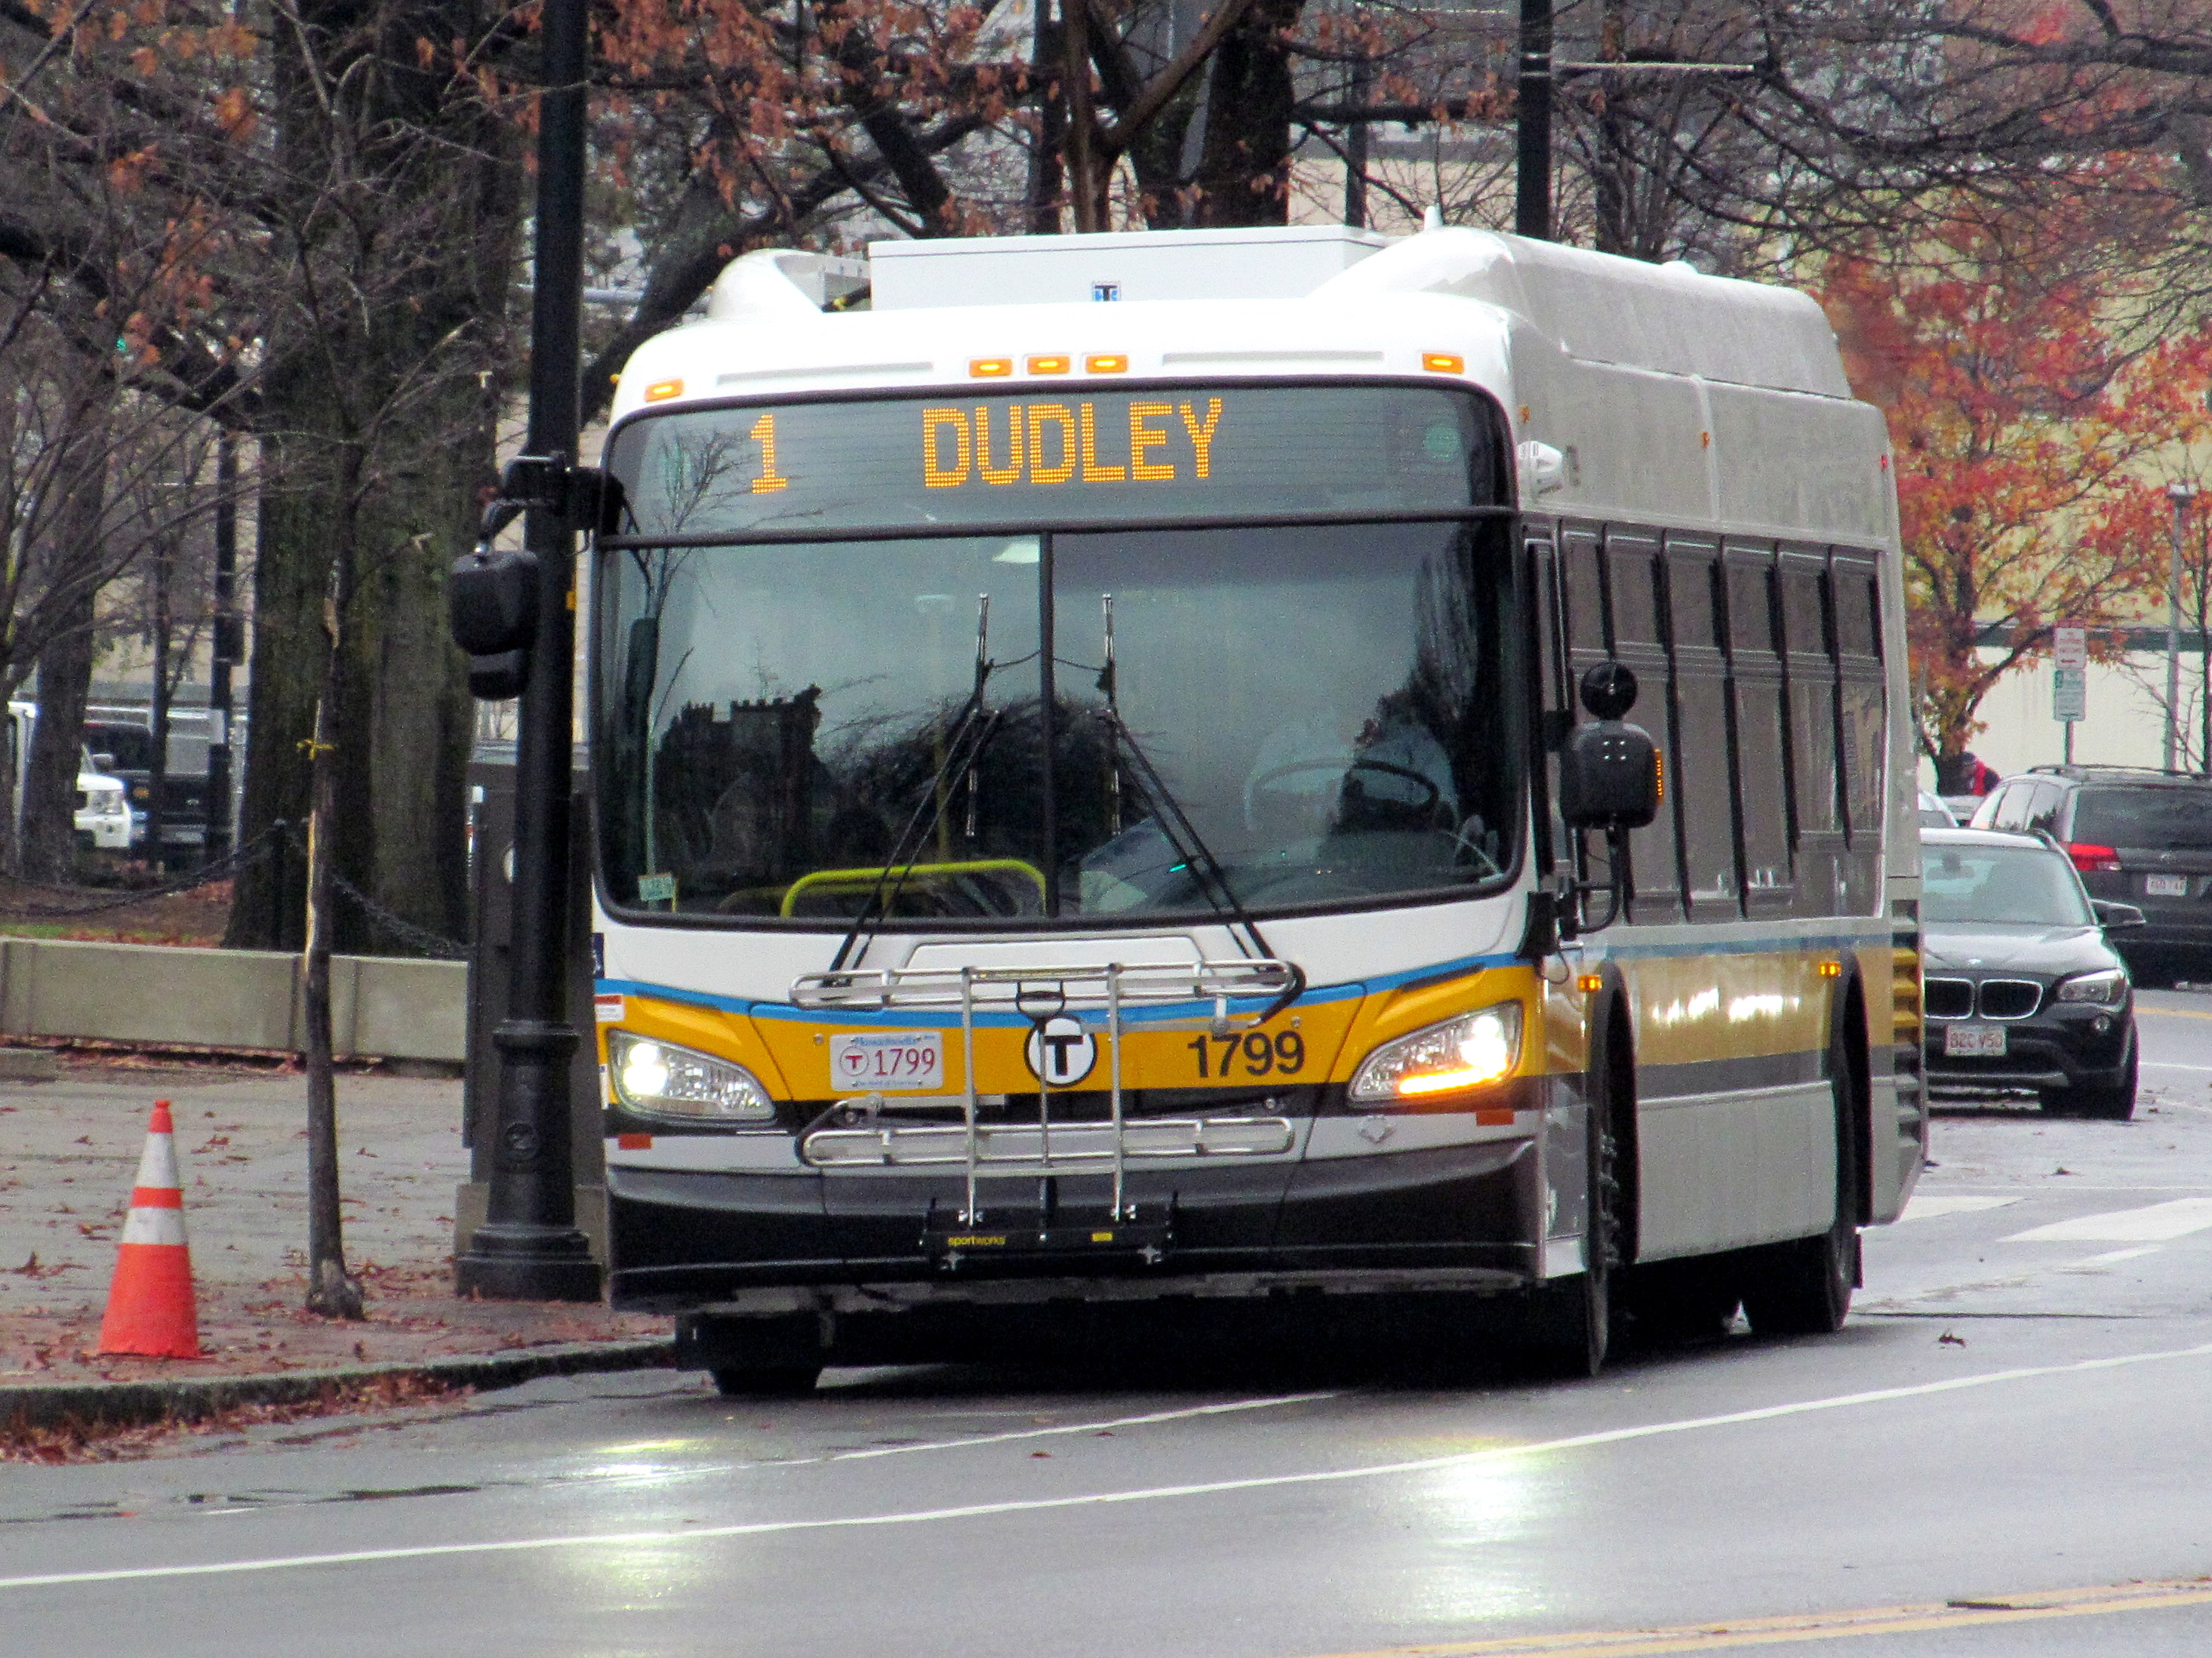 File:MBTA route 1 bus at MIT, December 2016.JPG - Wikimedia Commons